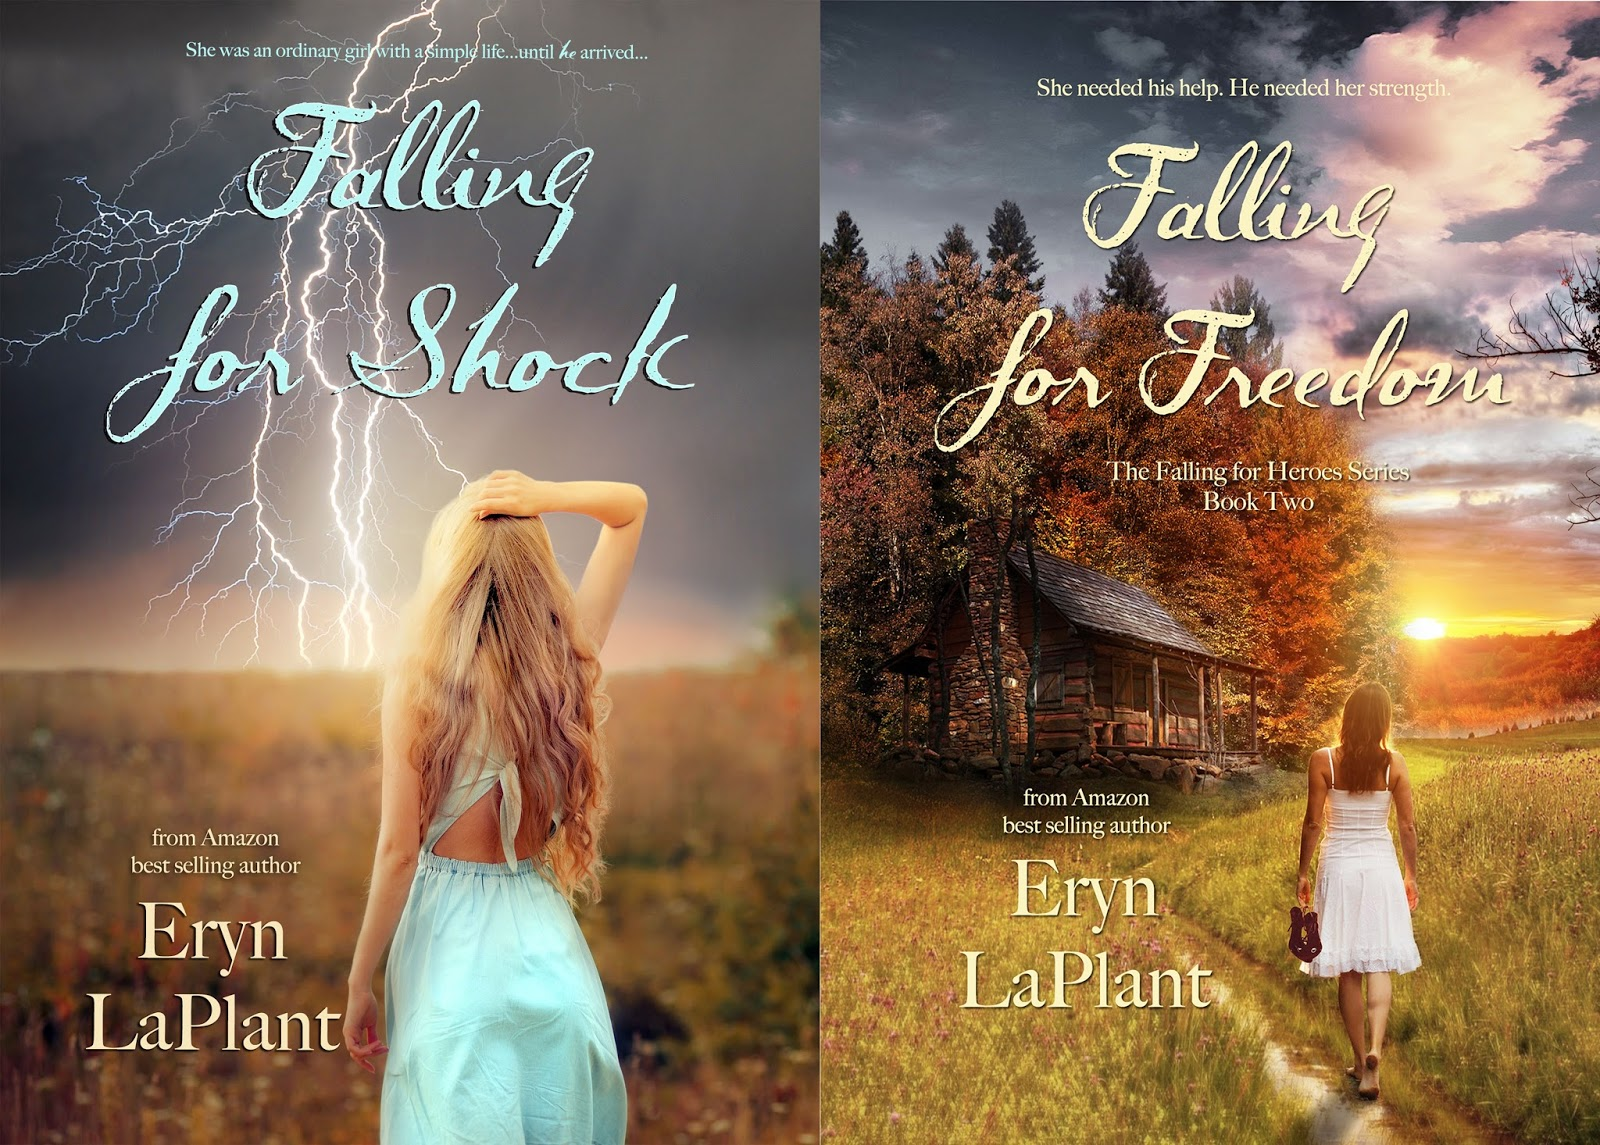 Special excerpt from contemporary romance Falling for Heroes by Eryn LaPlant